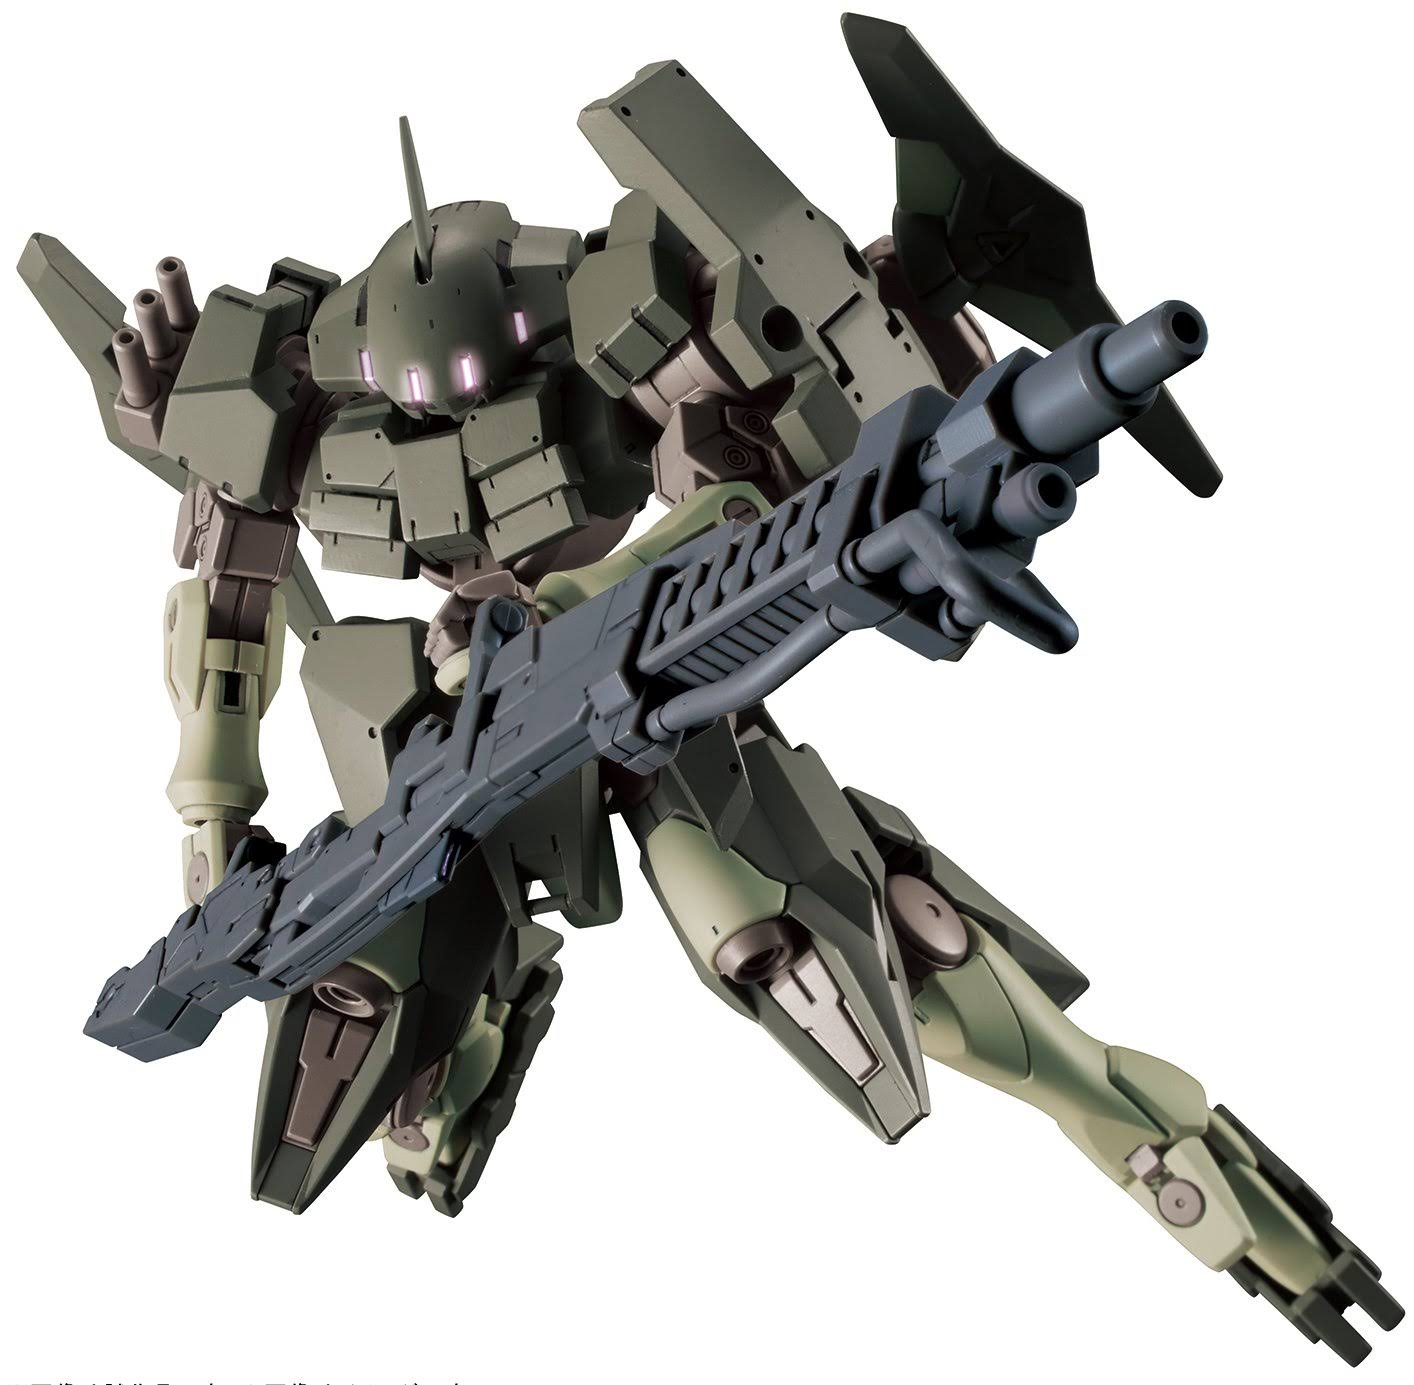 Bandai Gundom Gundam Striker GN-X Model Kit - 1:144 Scale